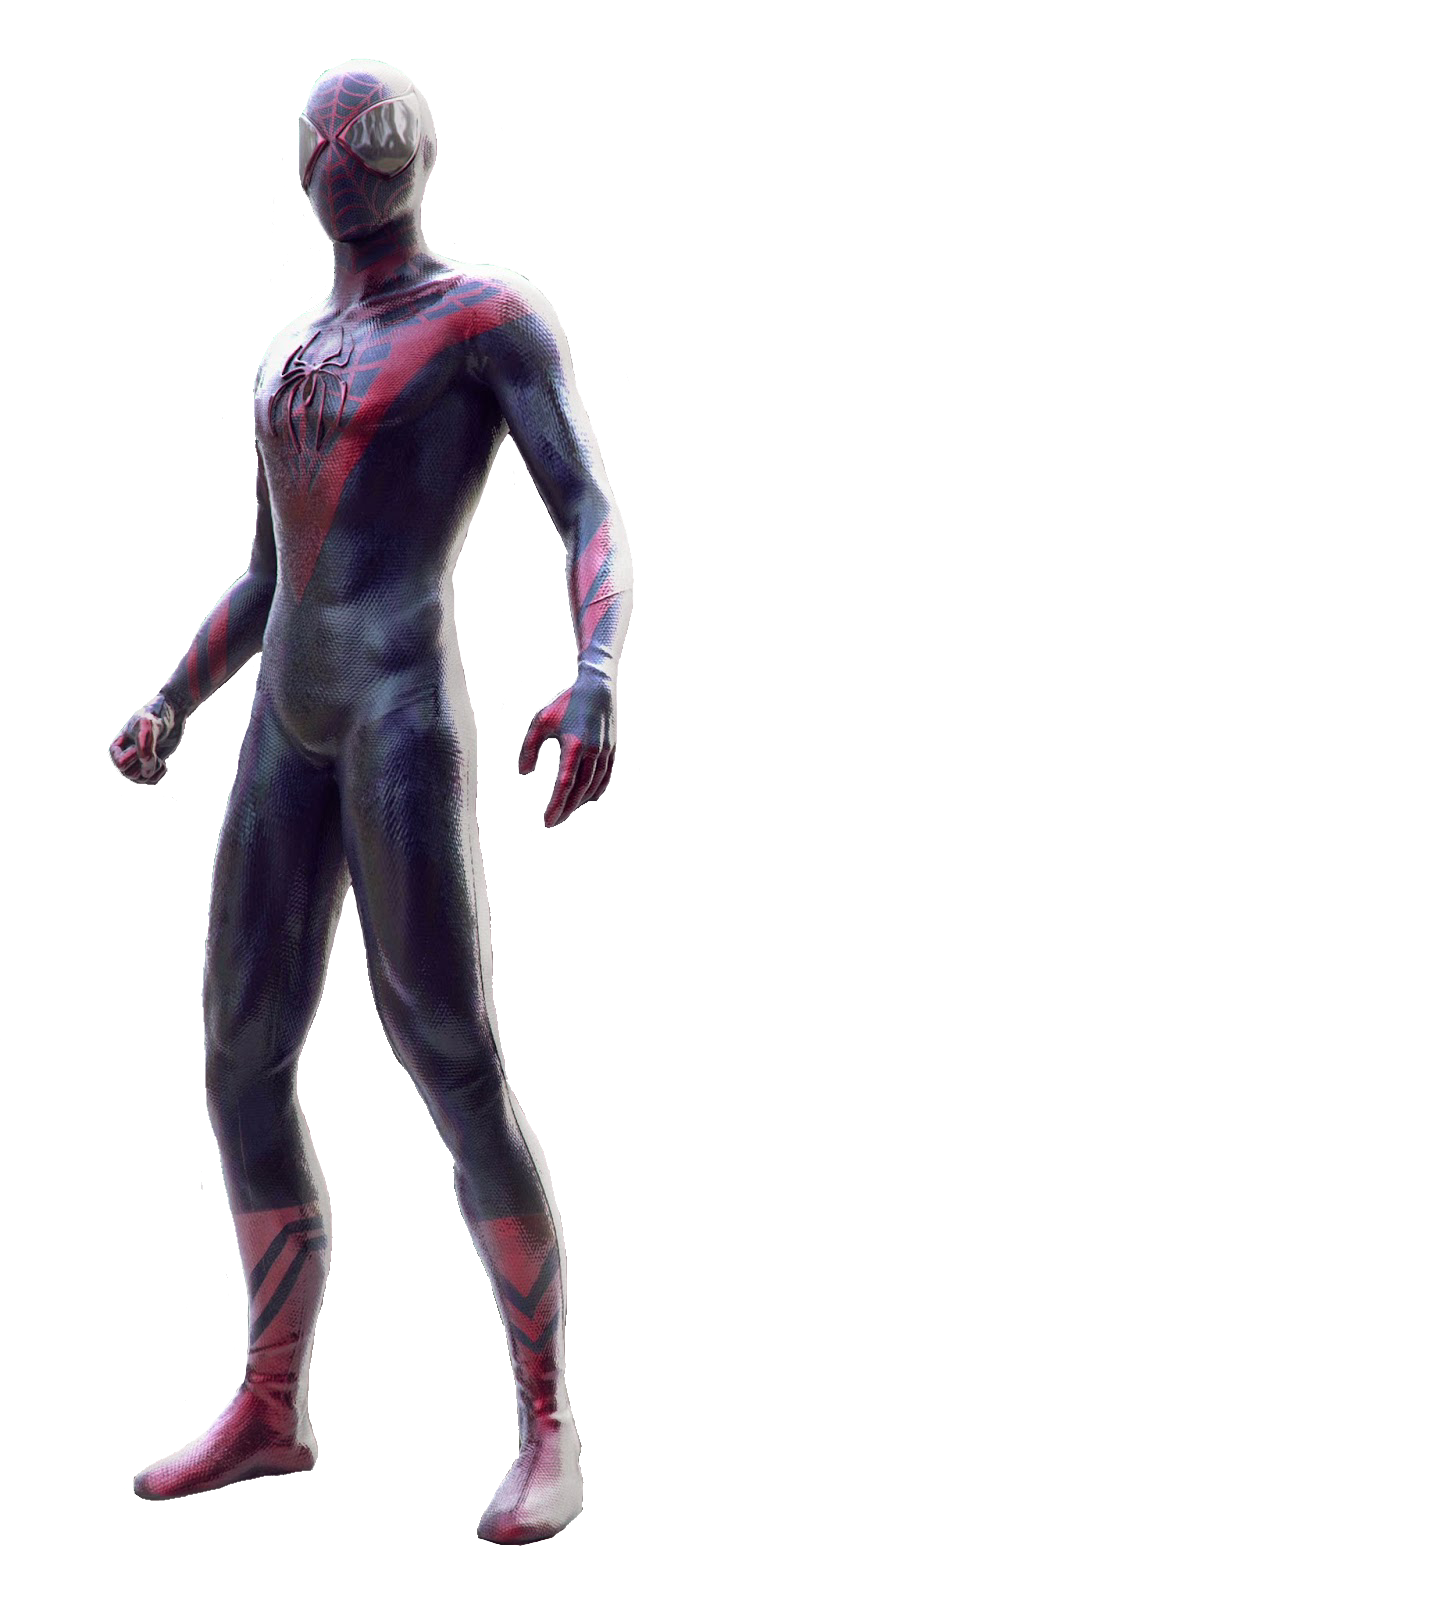 3d spider man transparent - photo #8